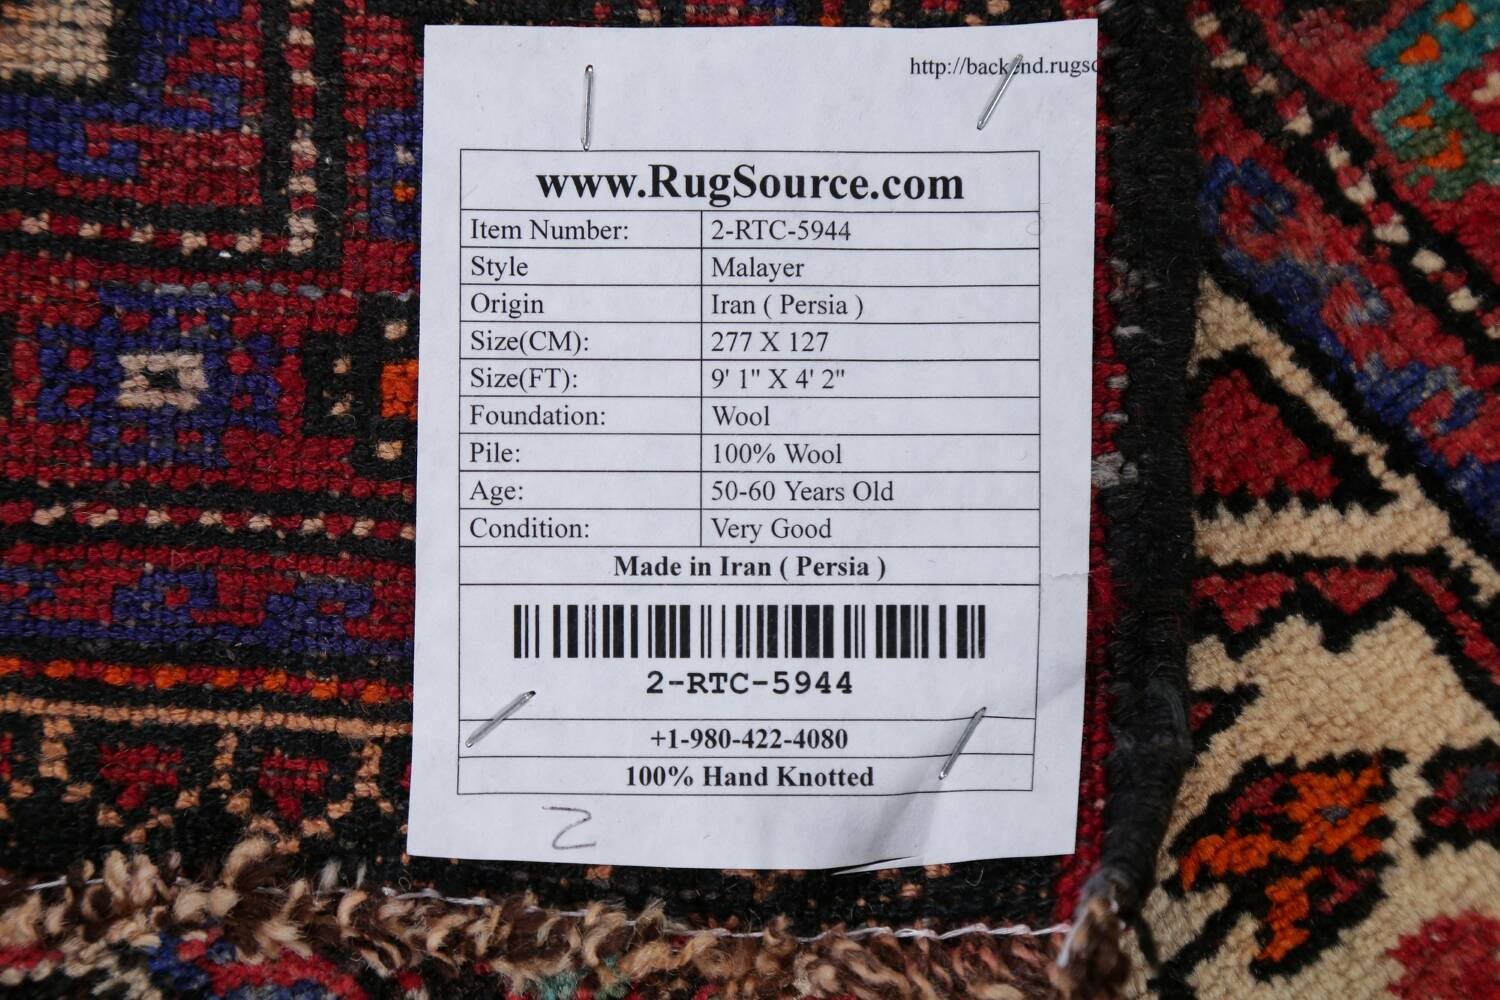 Vintage Geometric Red Malayer Persian Runner Rug 4x9 image 23